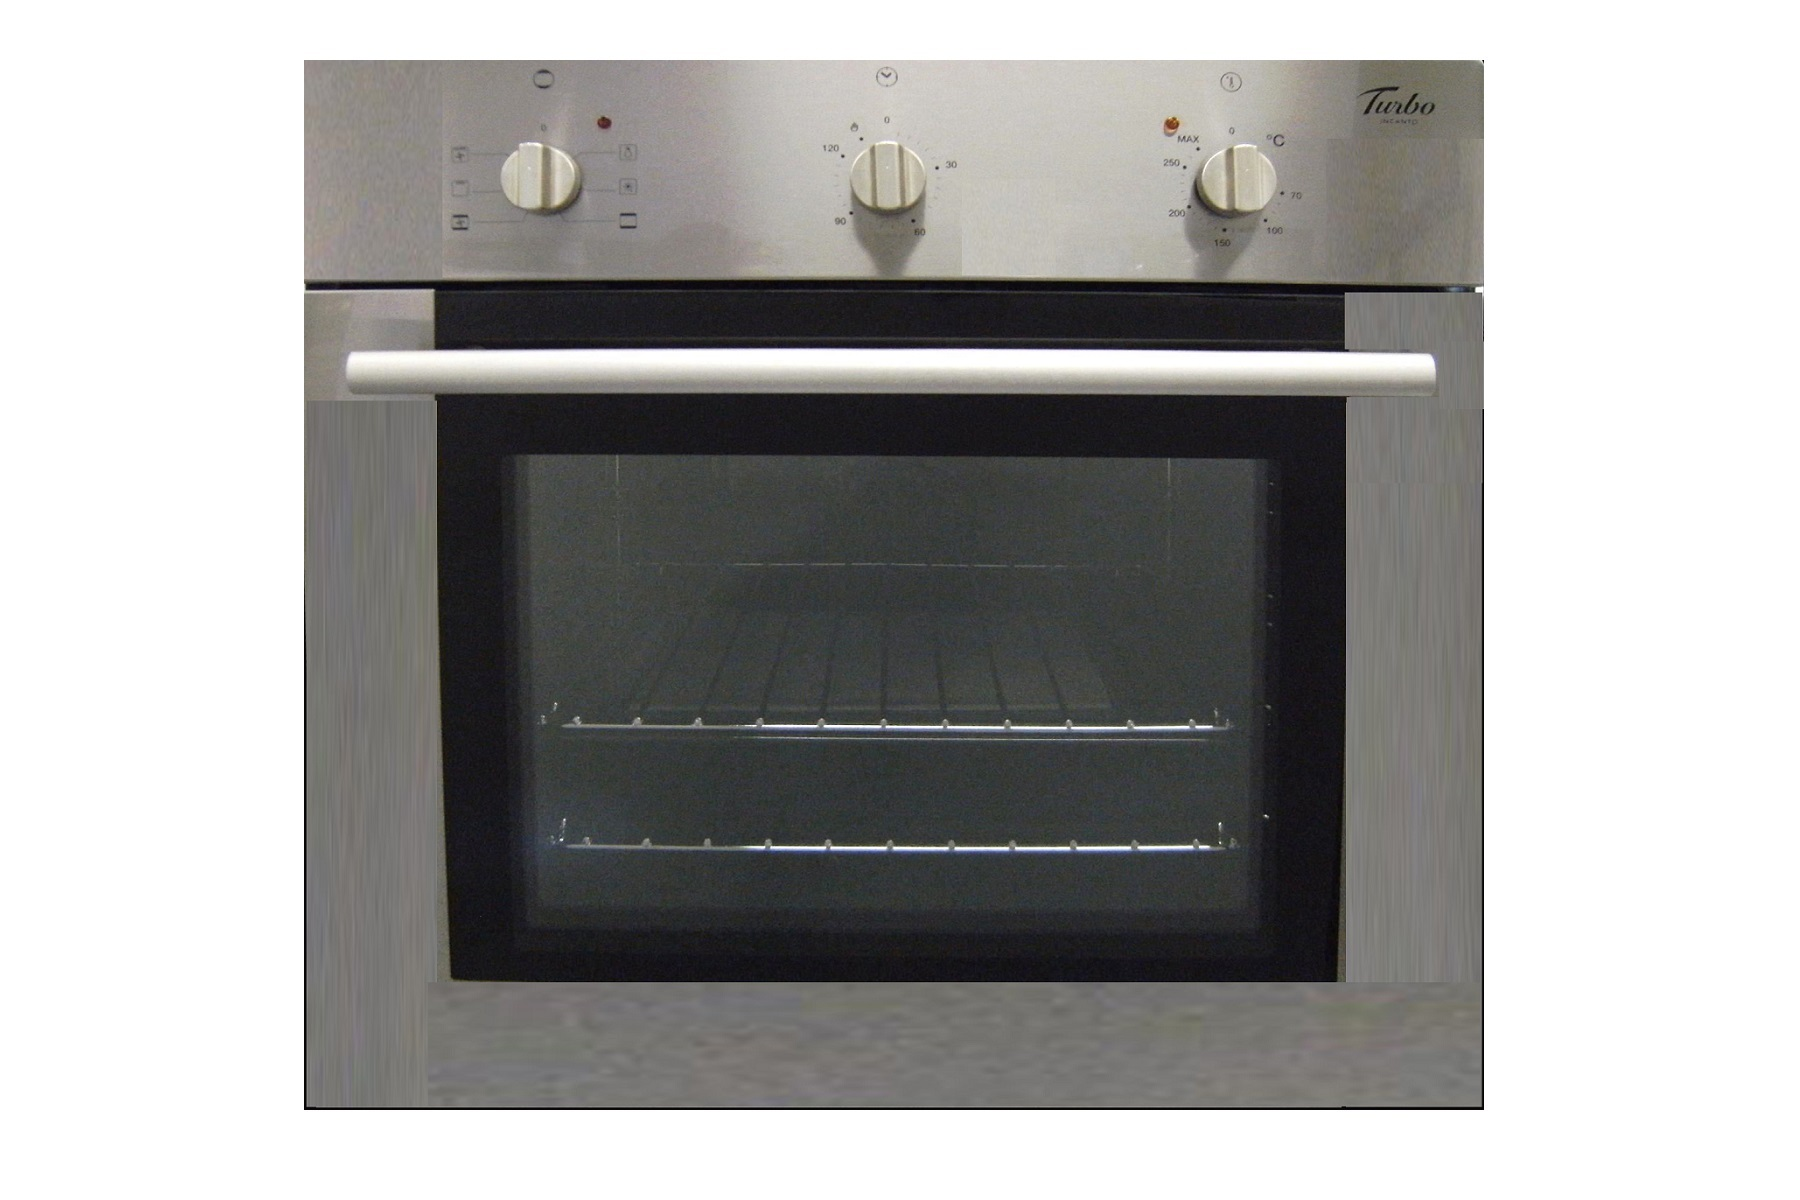 best ovens in singapore Turbo Incanto TFX6605SS